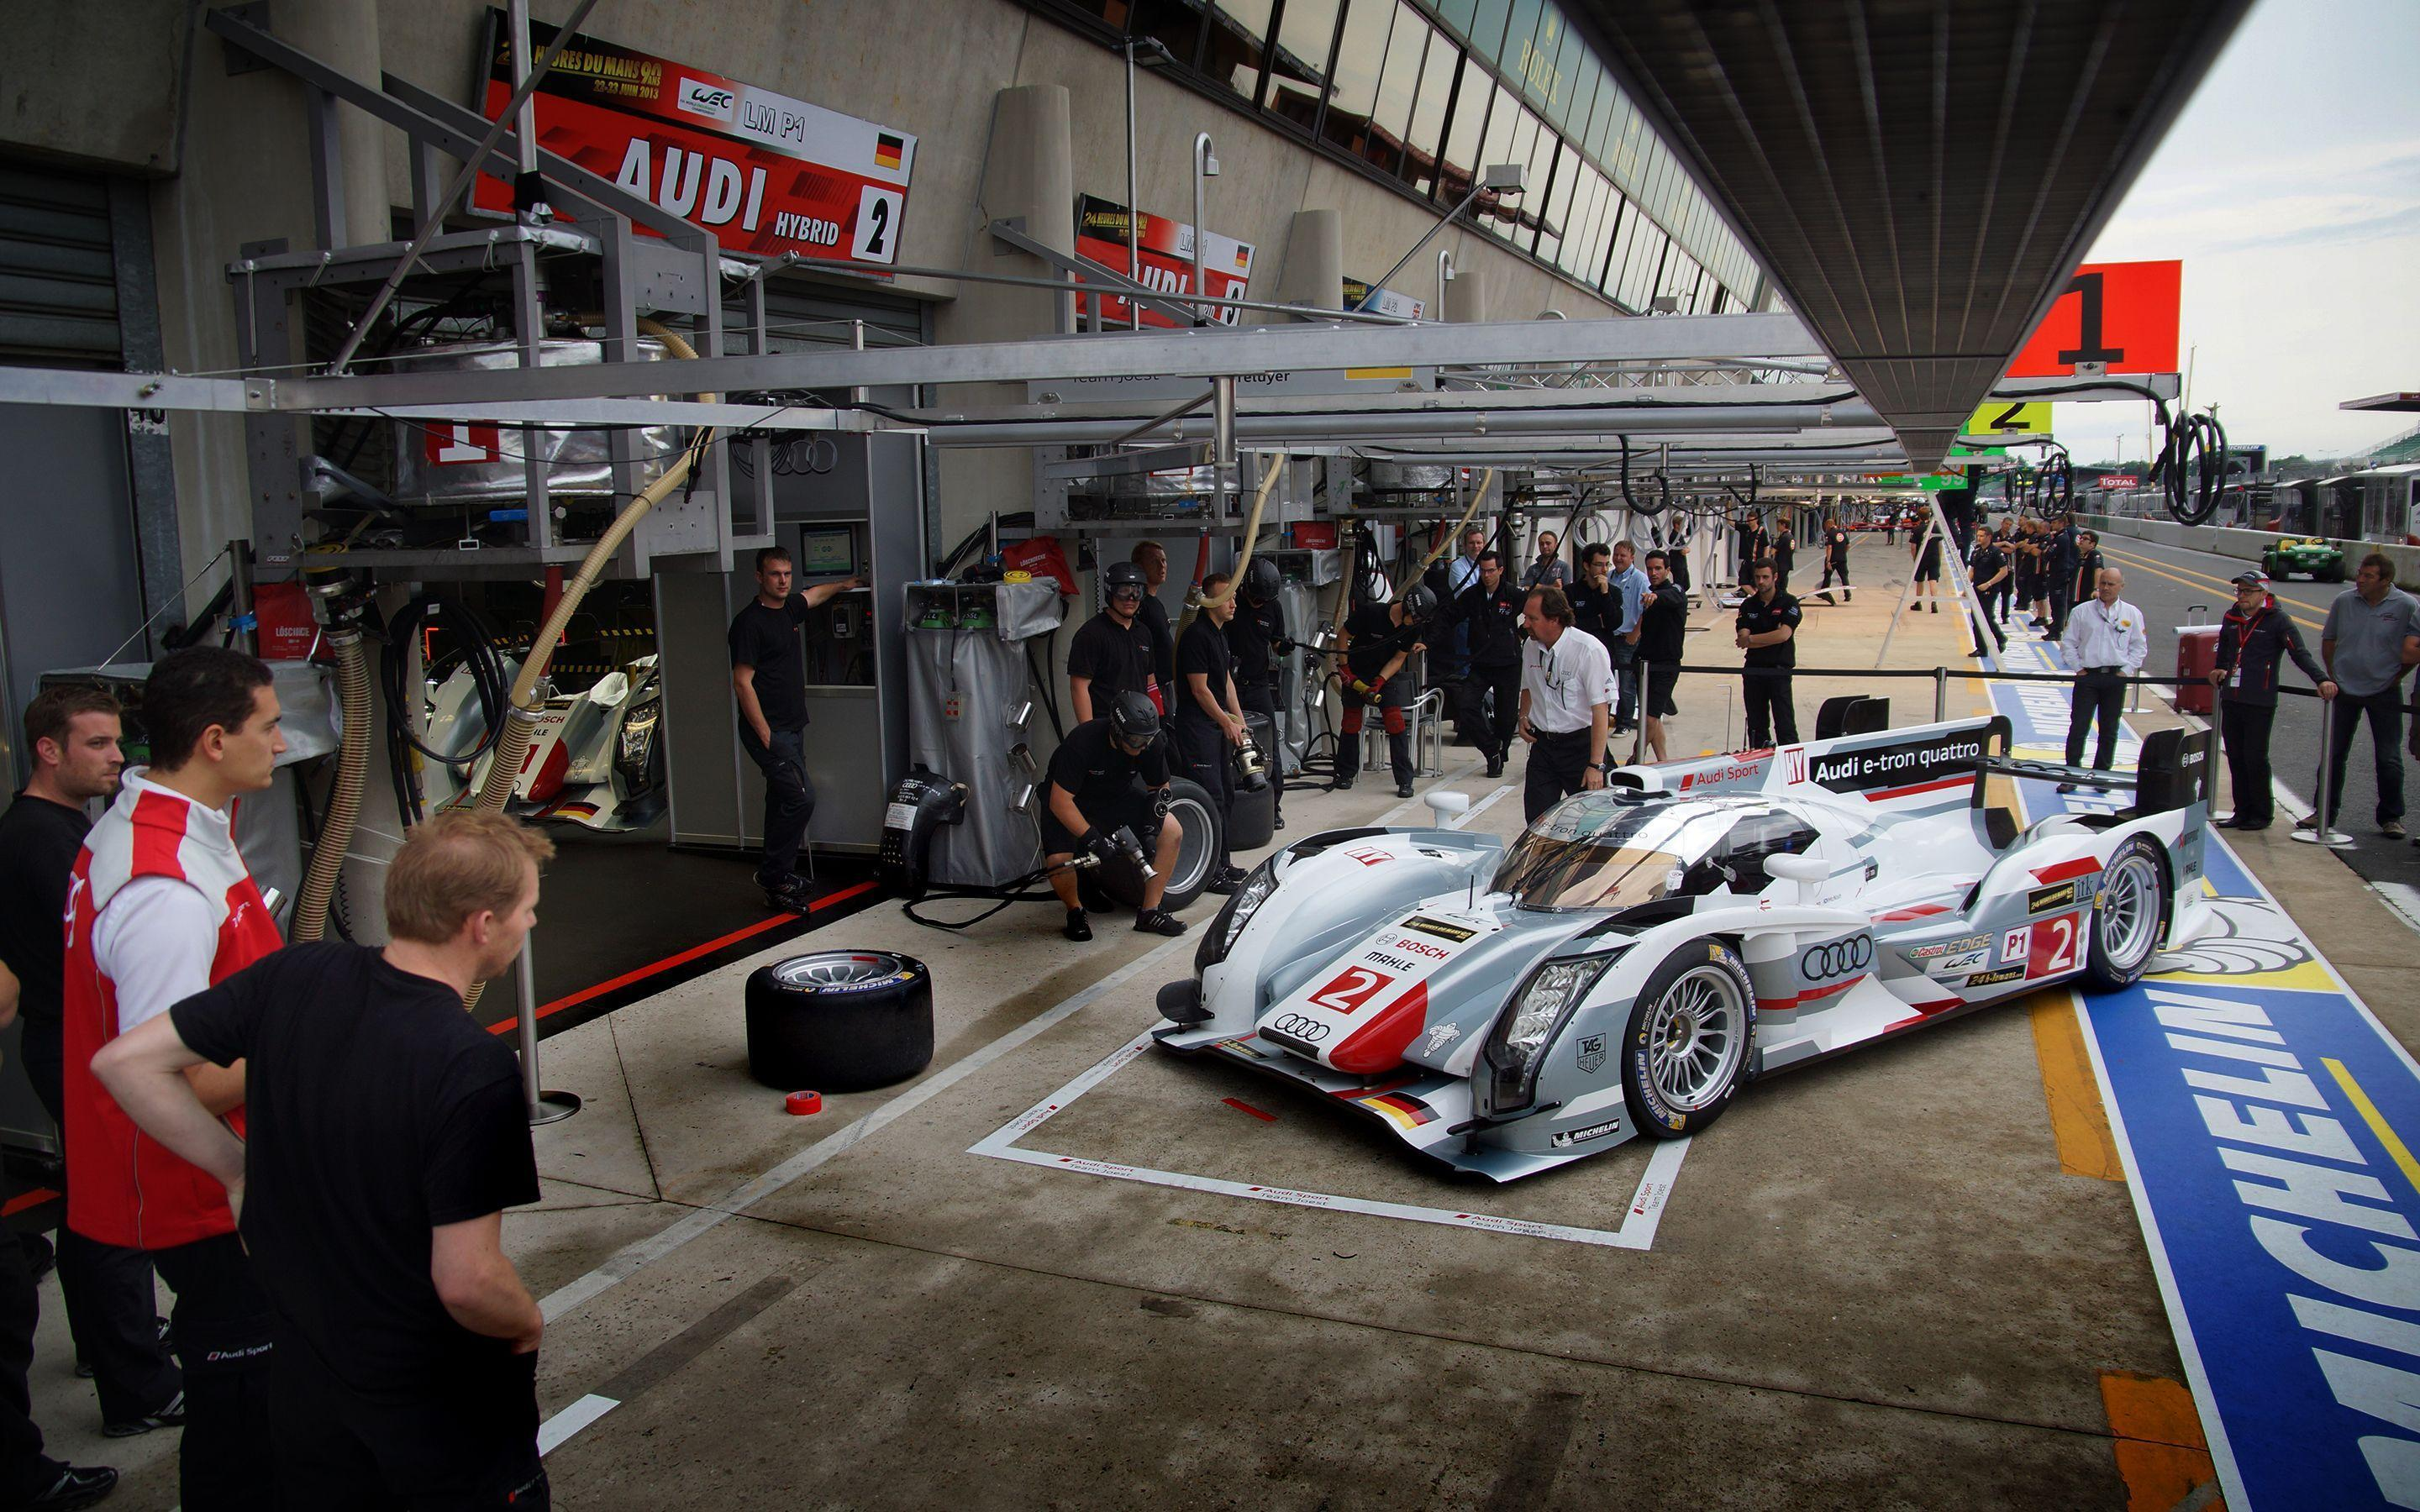 WotD: Pit Practice at the 24 Hours of Le Mans - Fourtitude.com